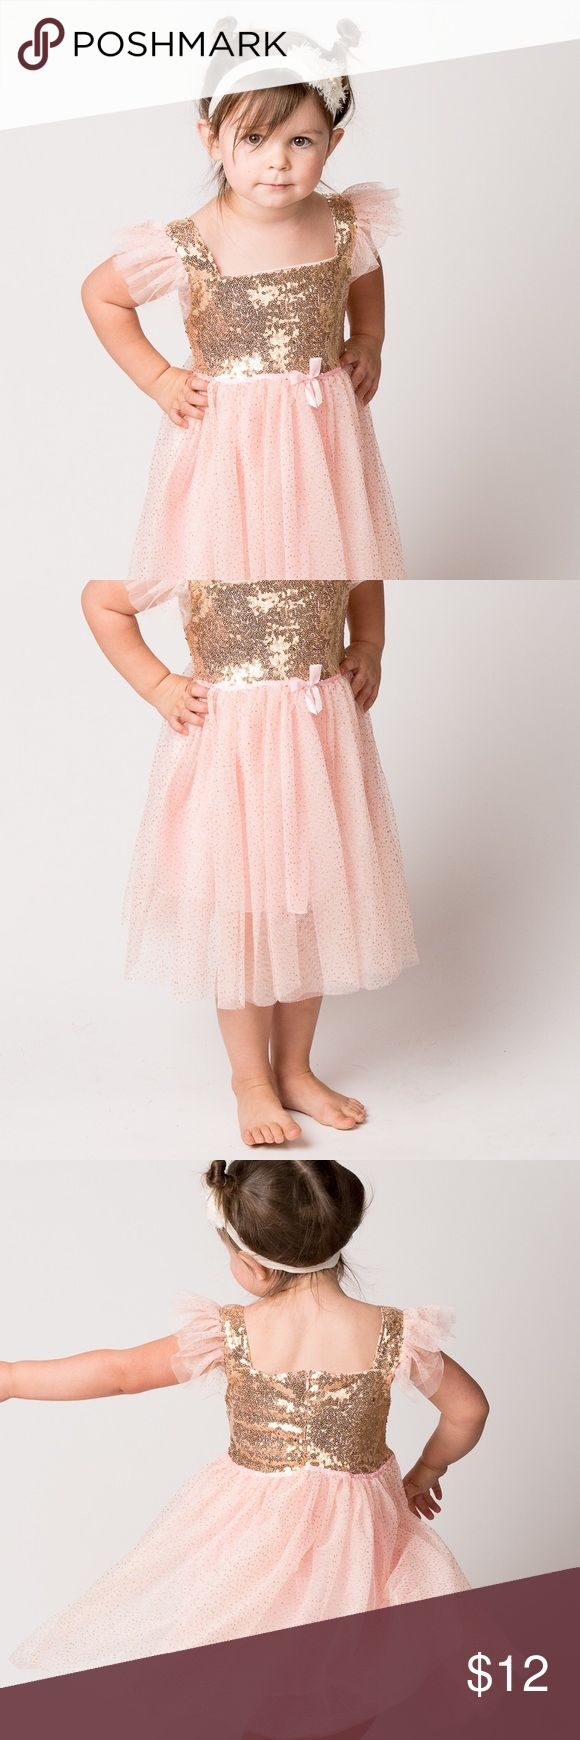 Sparkly Gold and Pink Princes Dress Sparkles and Glitter is what makes this dress stand out!   Every girl will feel like a Princess in this dressd.  Pretty for photos or dress up time. We are overstocked so we can offer this dress below wholesale price ! The Ruffled Bum Dresses